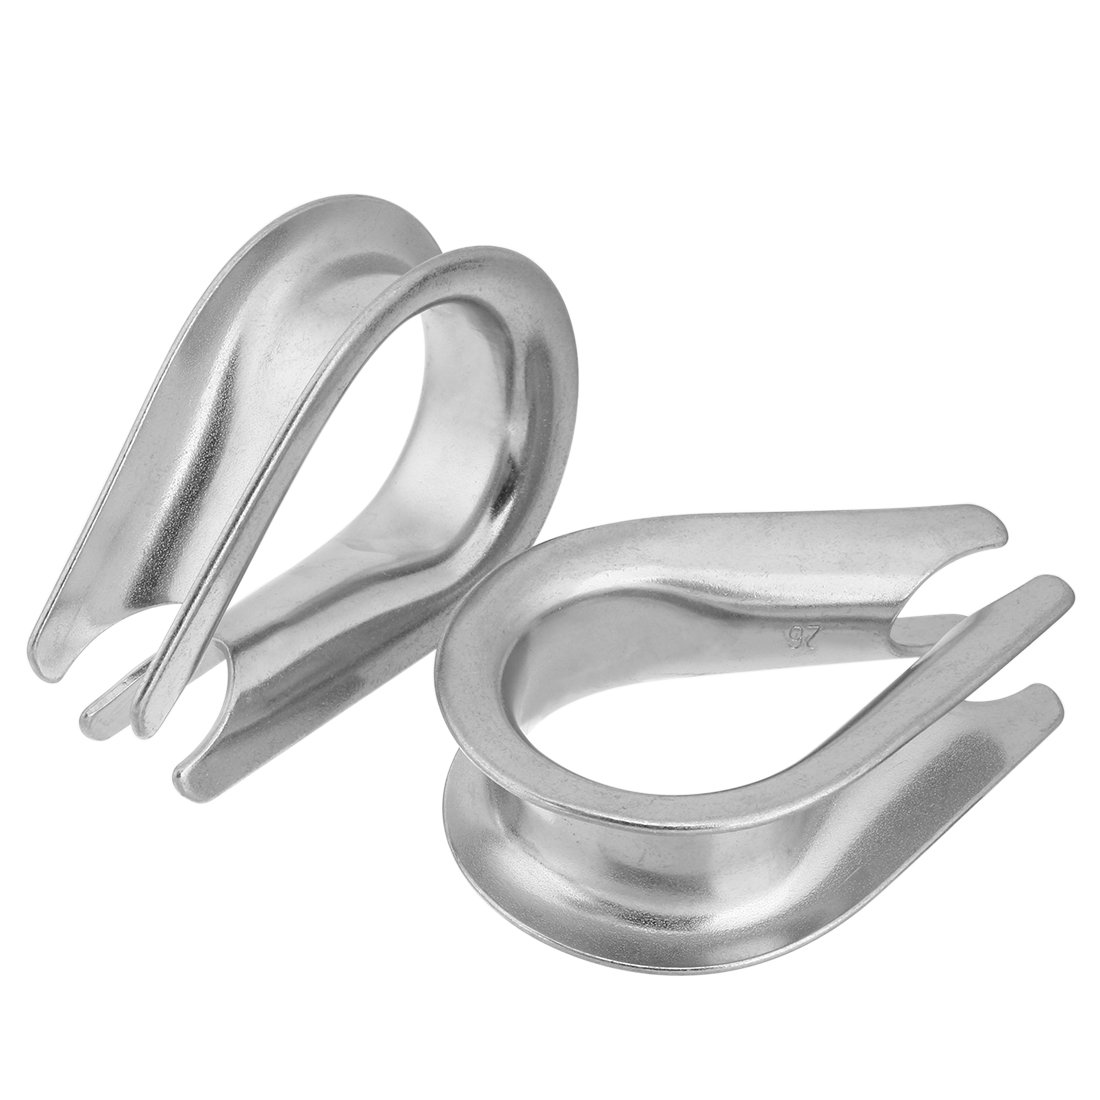 uxcell Stainless Steel Thimble for 1.02 inch (26mm) Diameter Wire Rope 2pcs